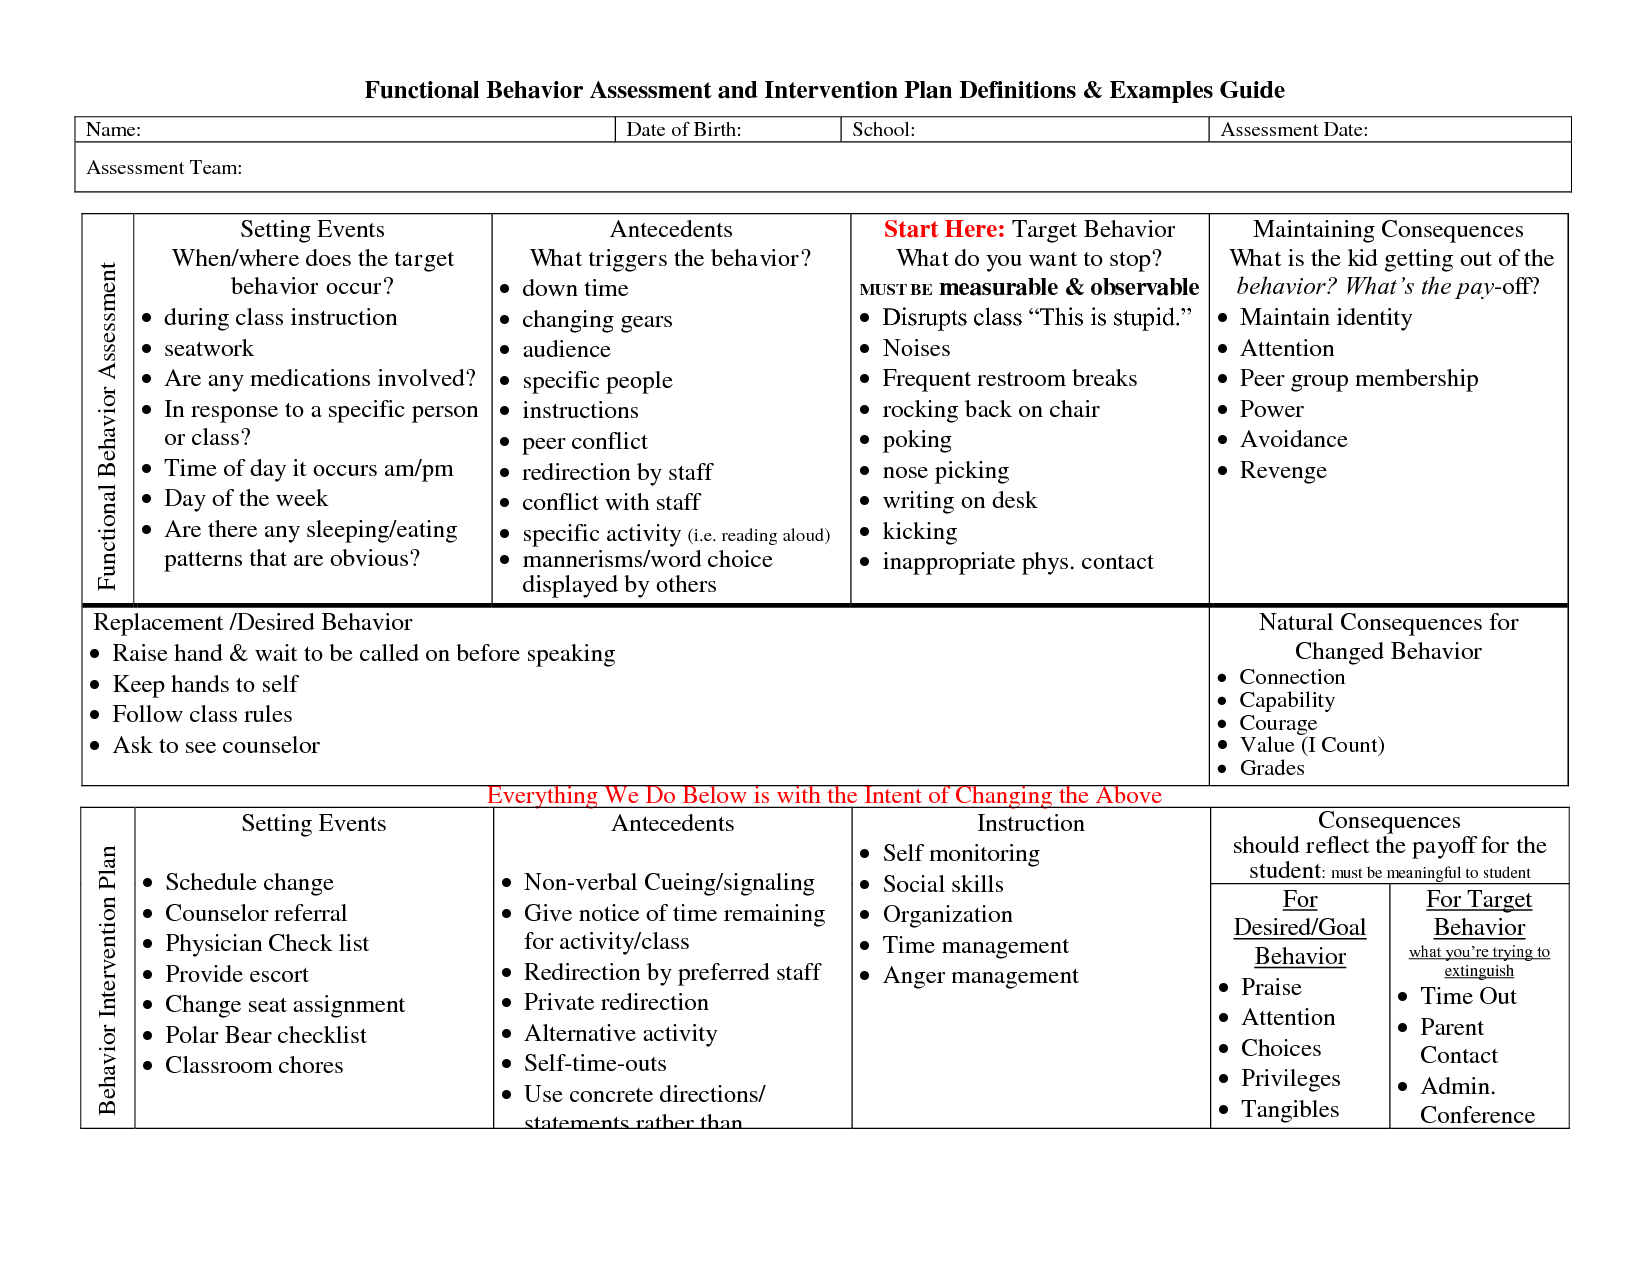 Functional Behavior Assessment Example